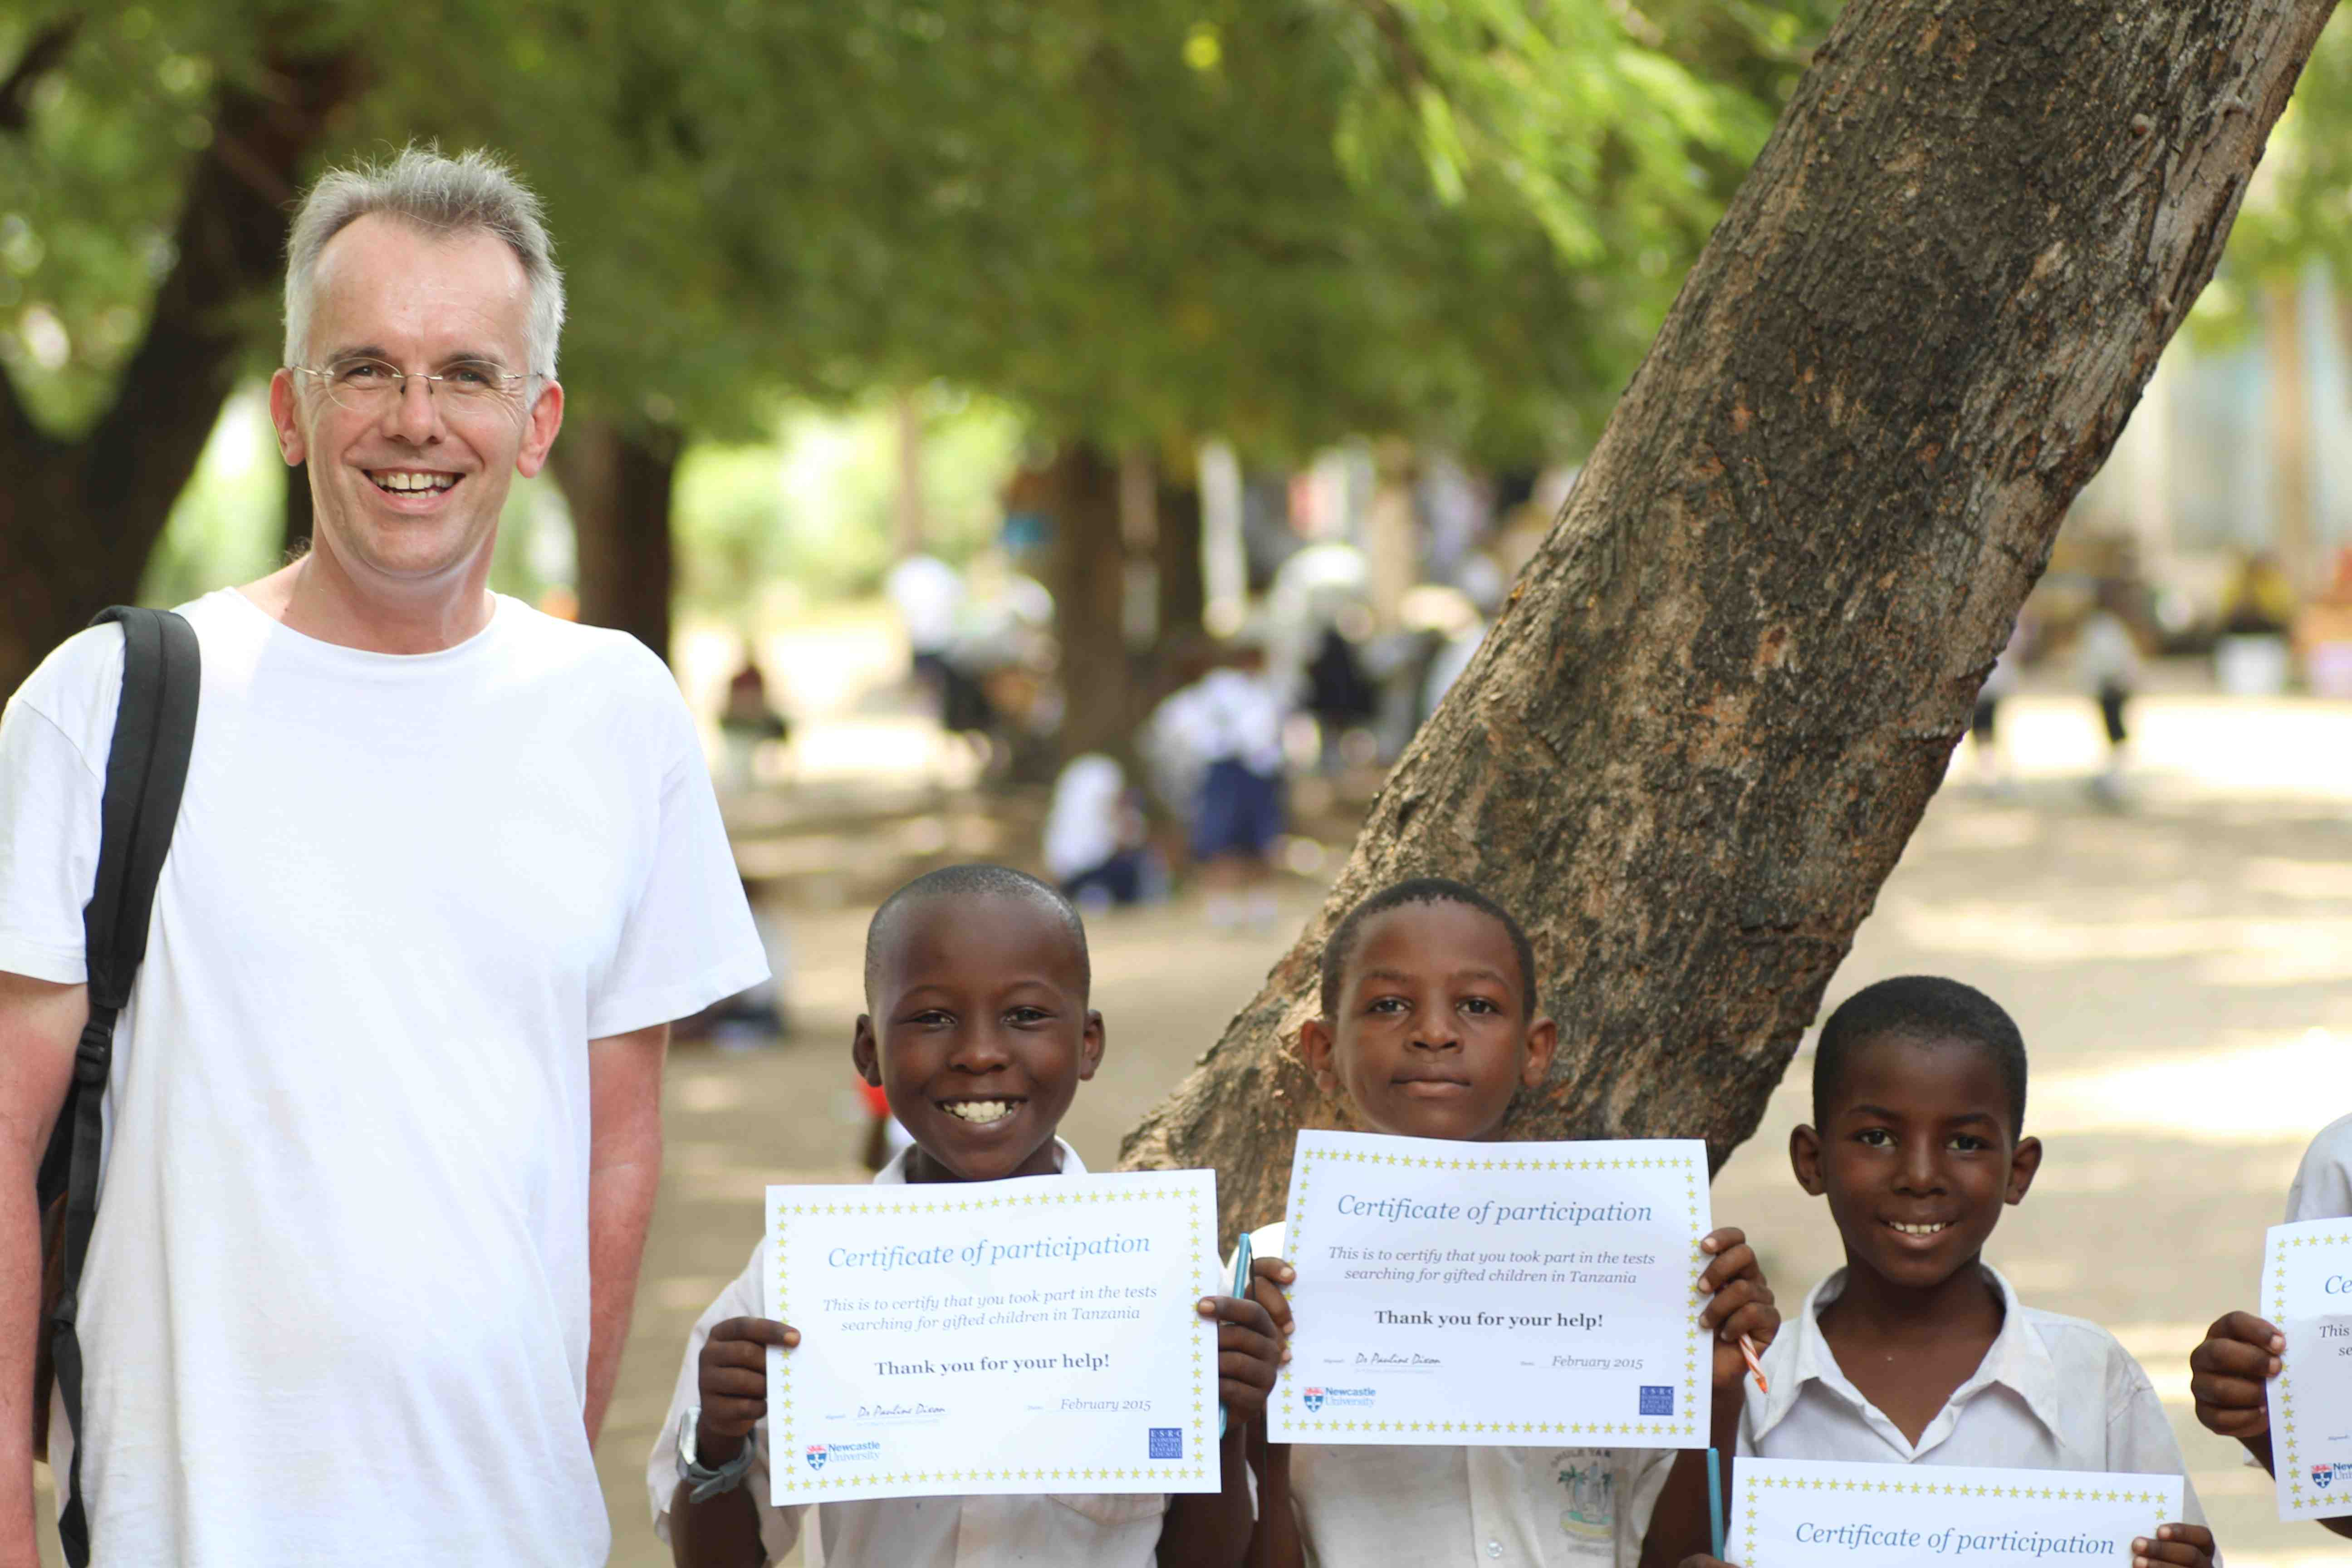 S with three children certificates